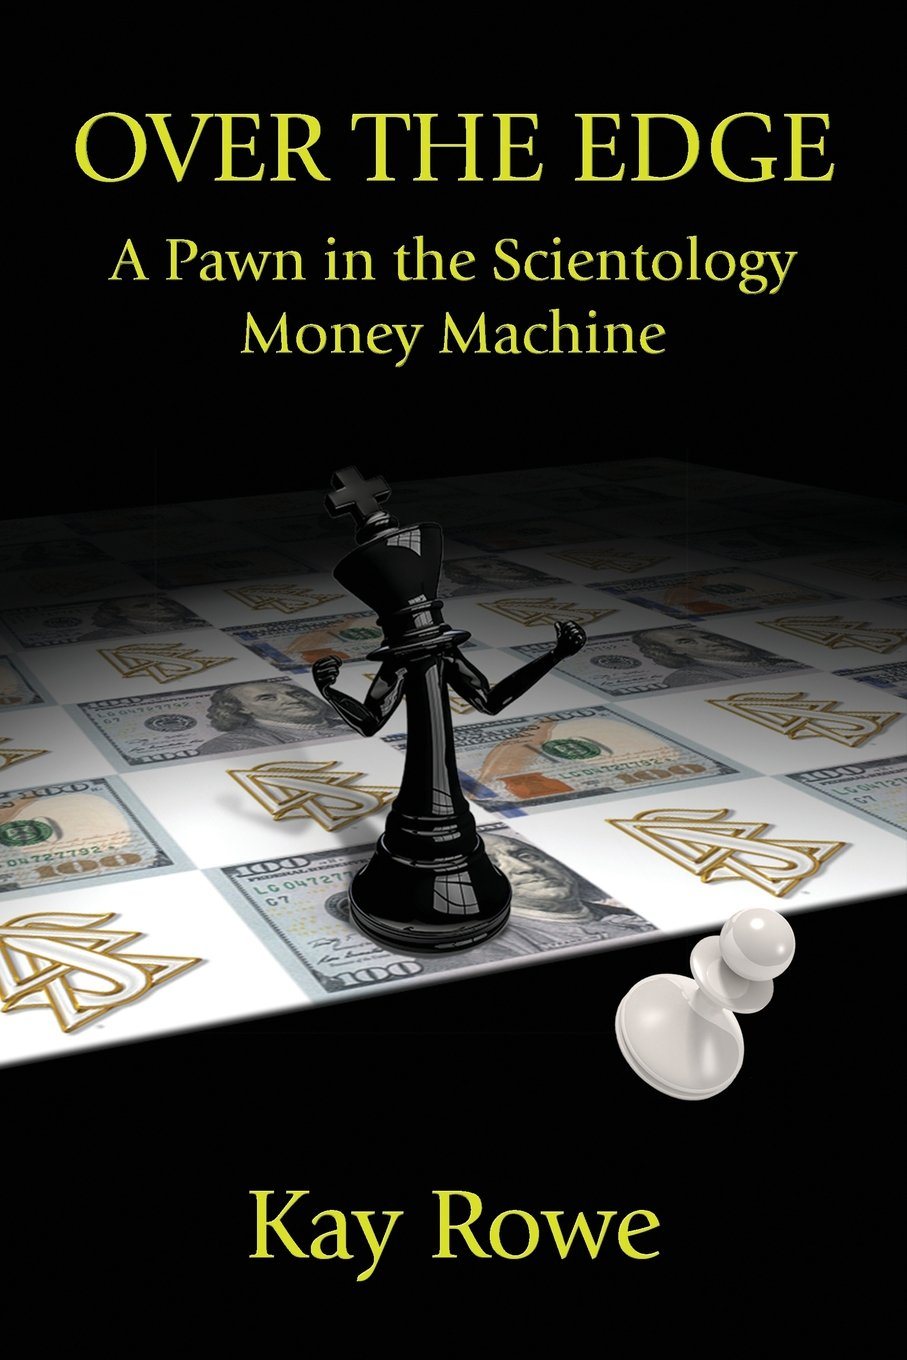 Over the Edge: A Pawn in the Scientology Money Machine ...